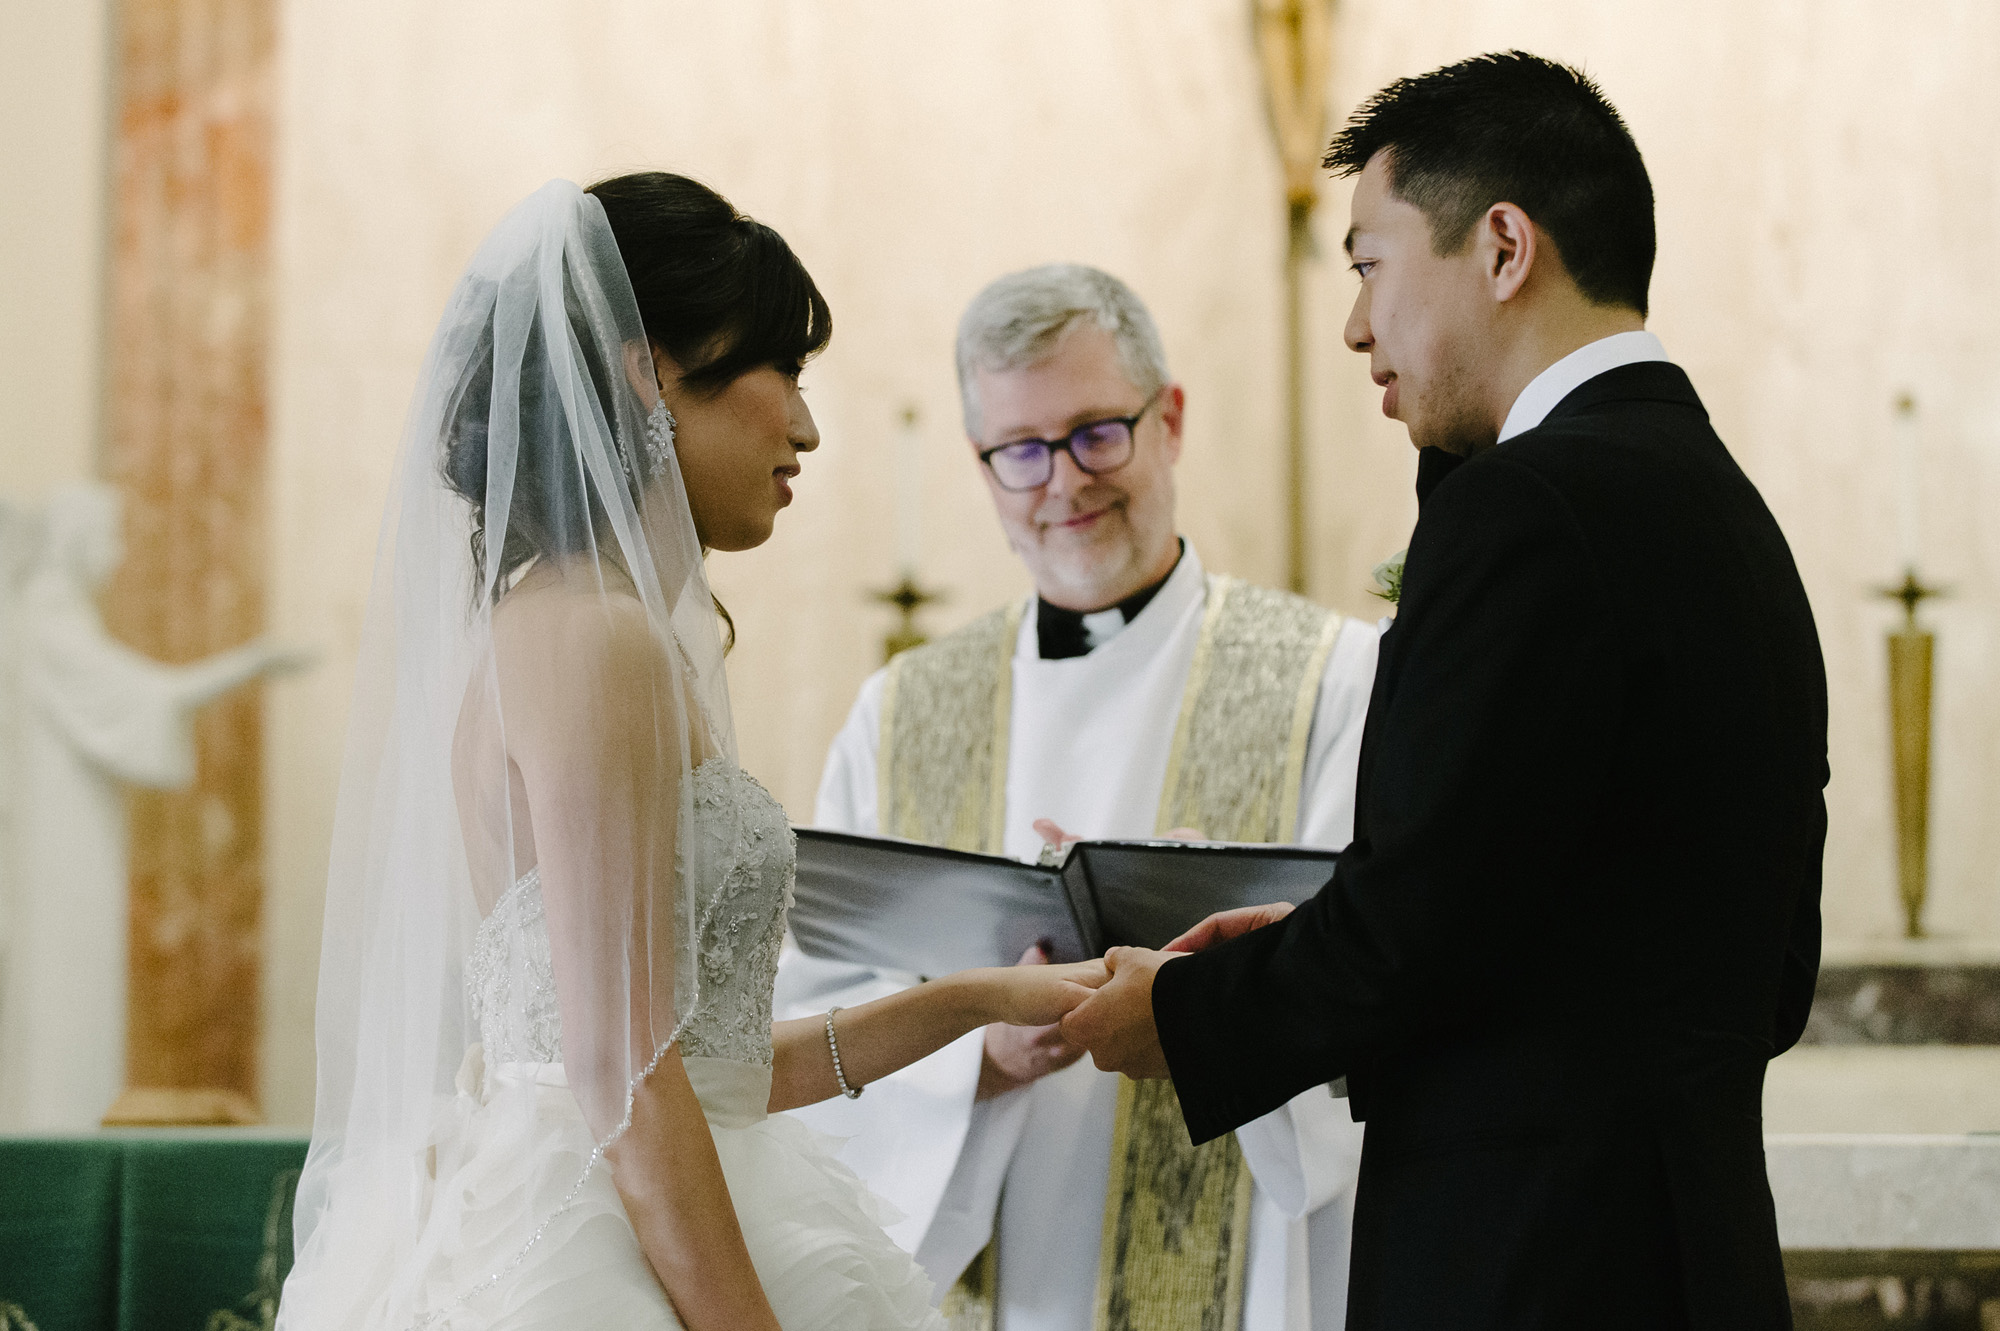 bride and groom exchange rings at during catholic wedding ceremony